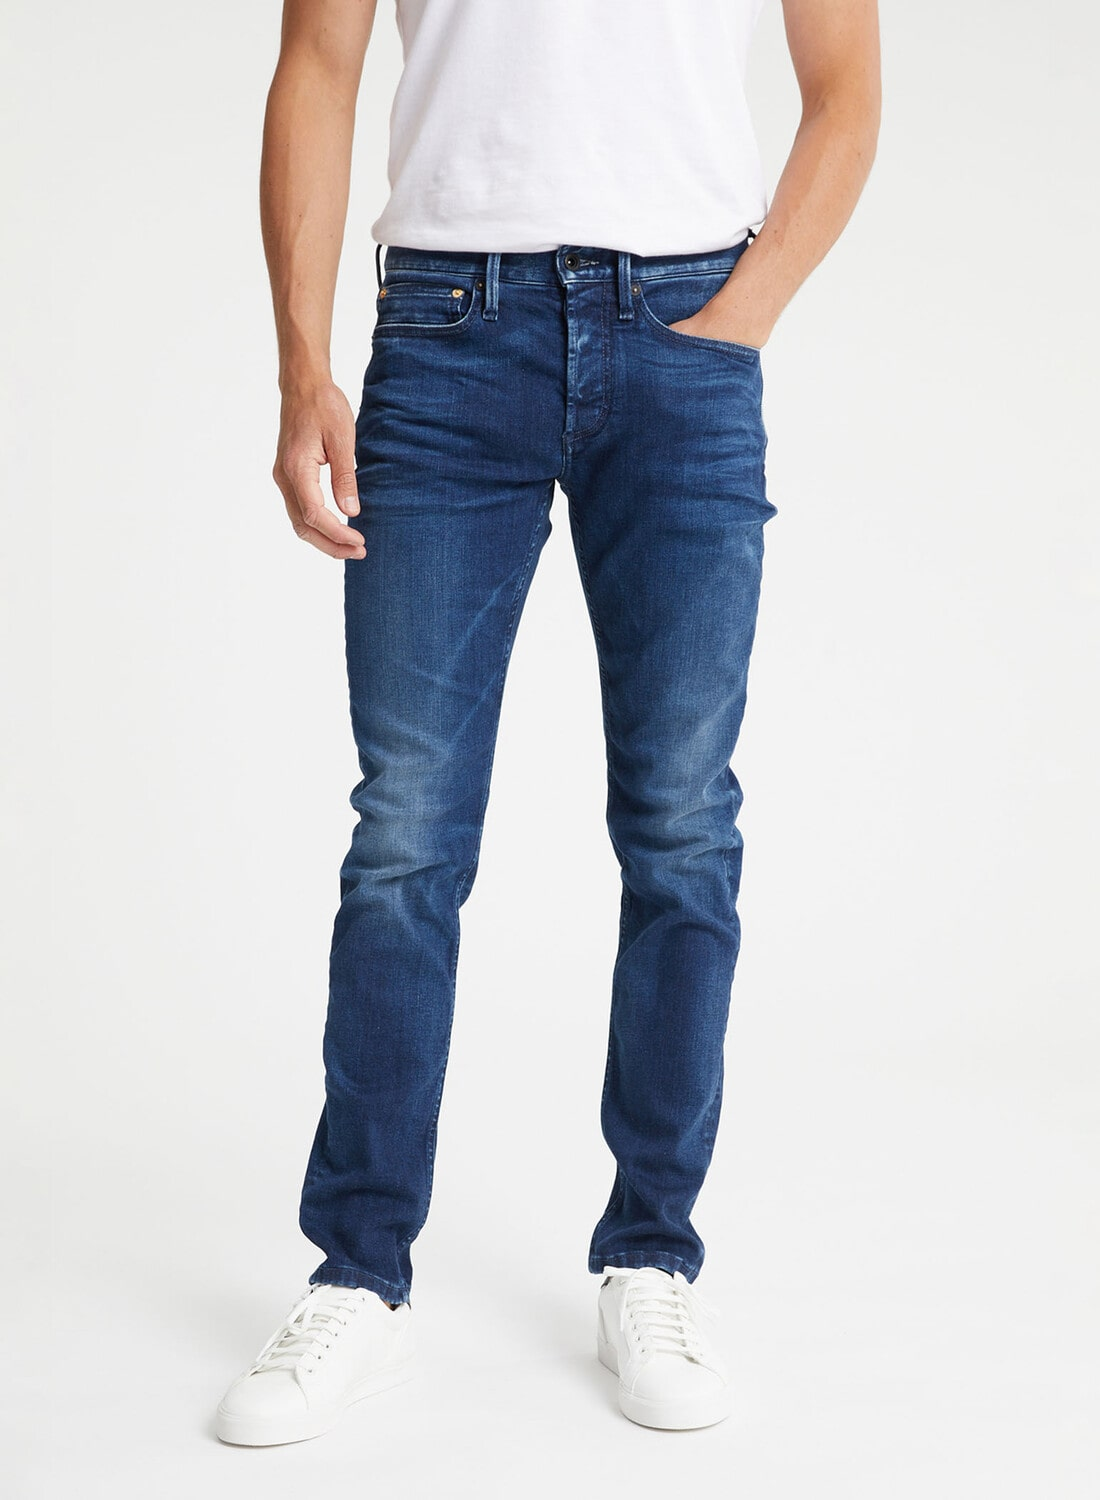 【CANDIANI DENIM】BOLT BLFMSBI